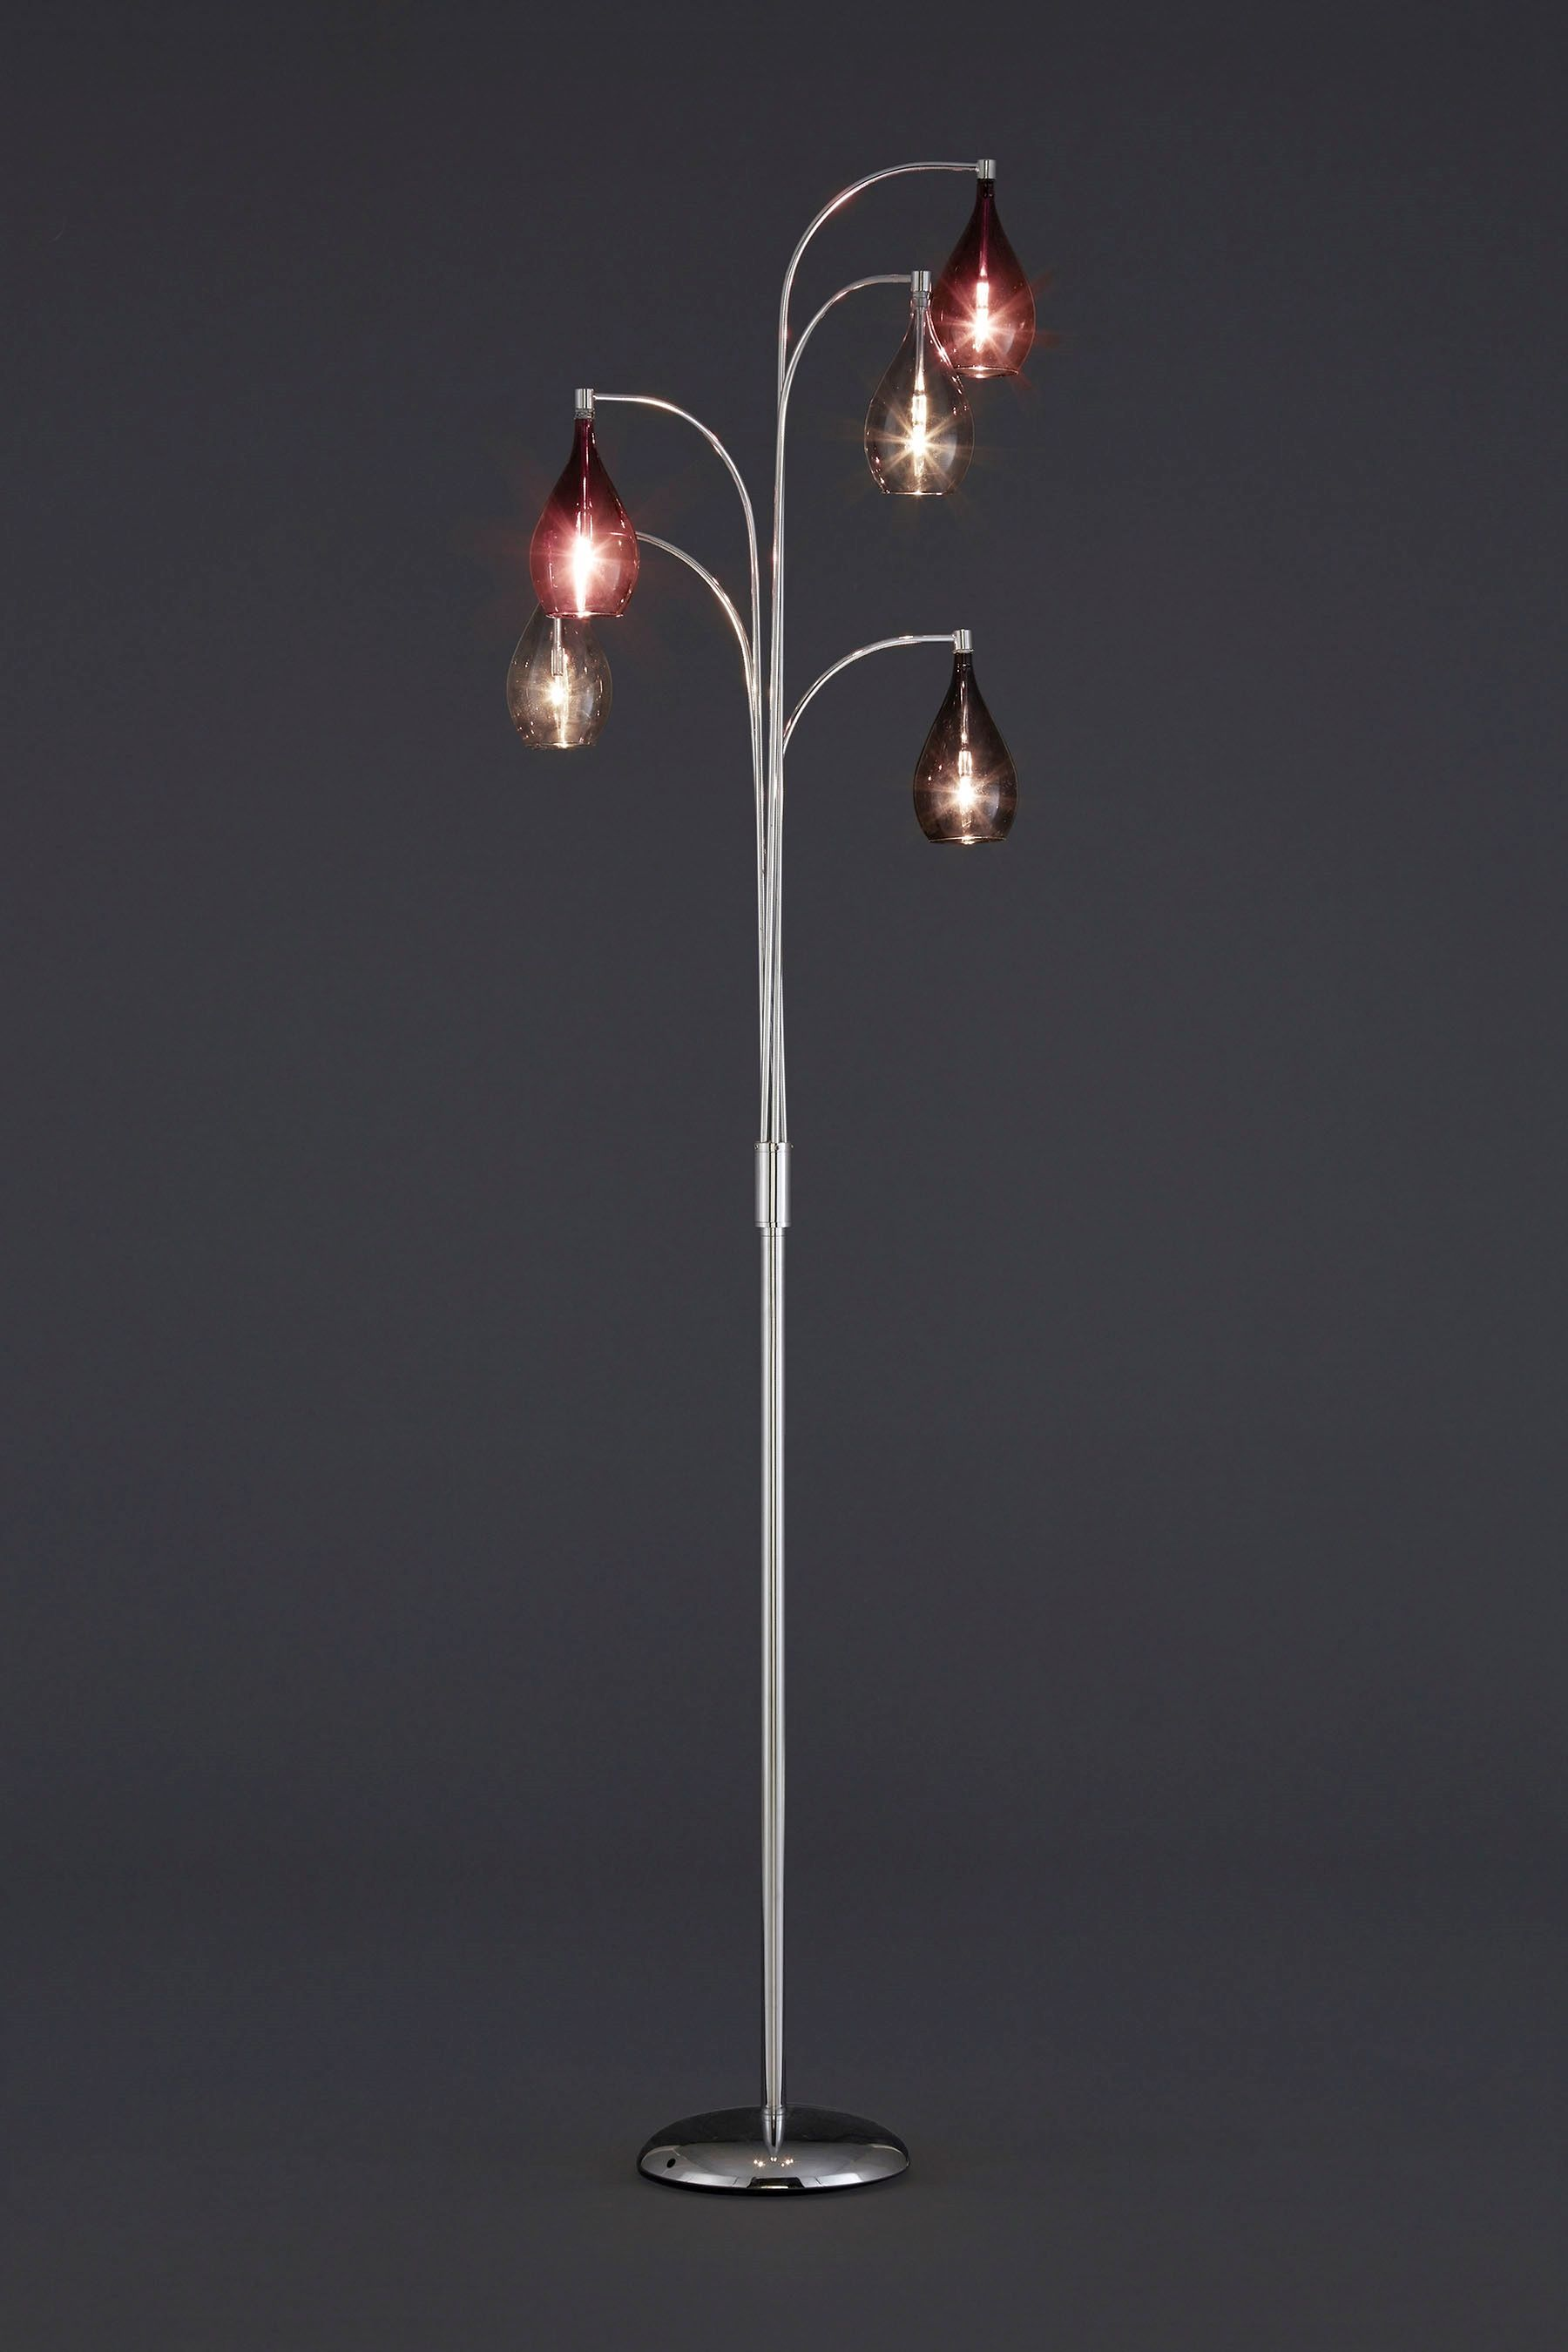 Buy hanbury 5 light floor lamp with plum shades from the next uk buy hanbury 5 light floor lamp with plum shades from the next uk online shop aloadofball Image collections